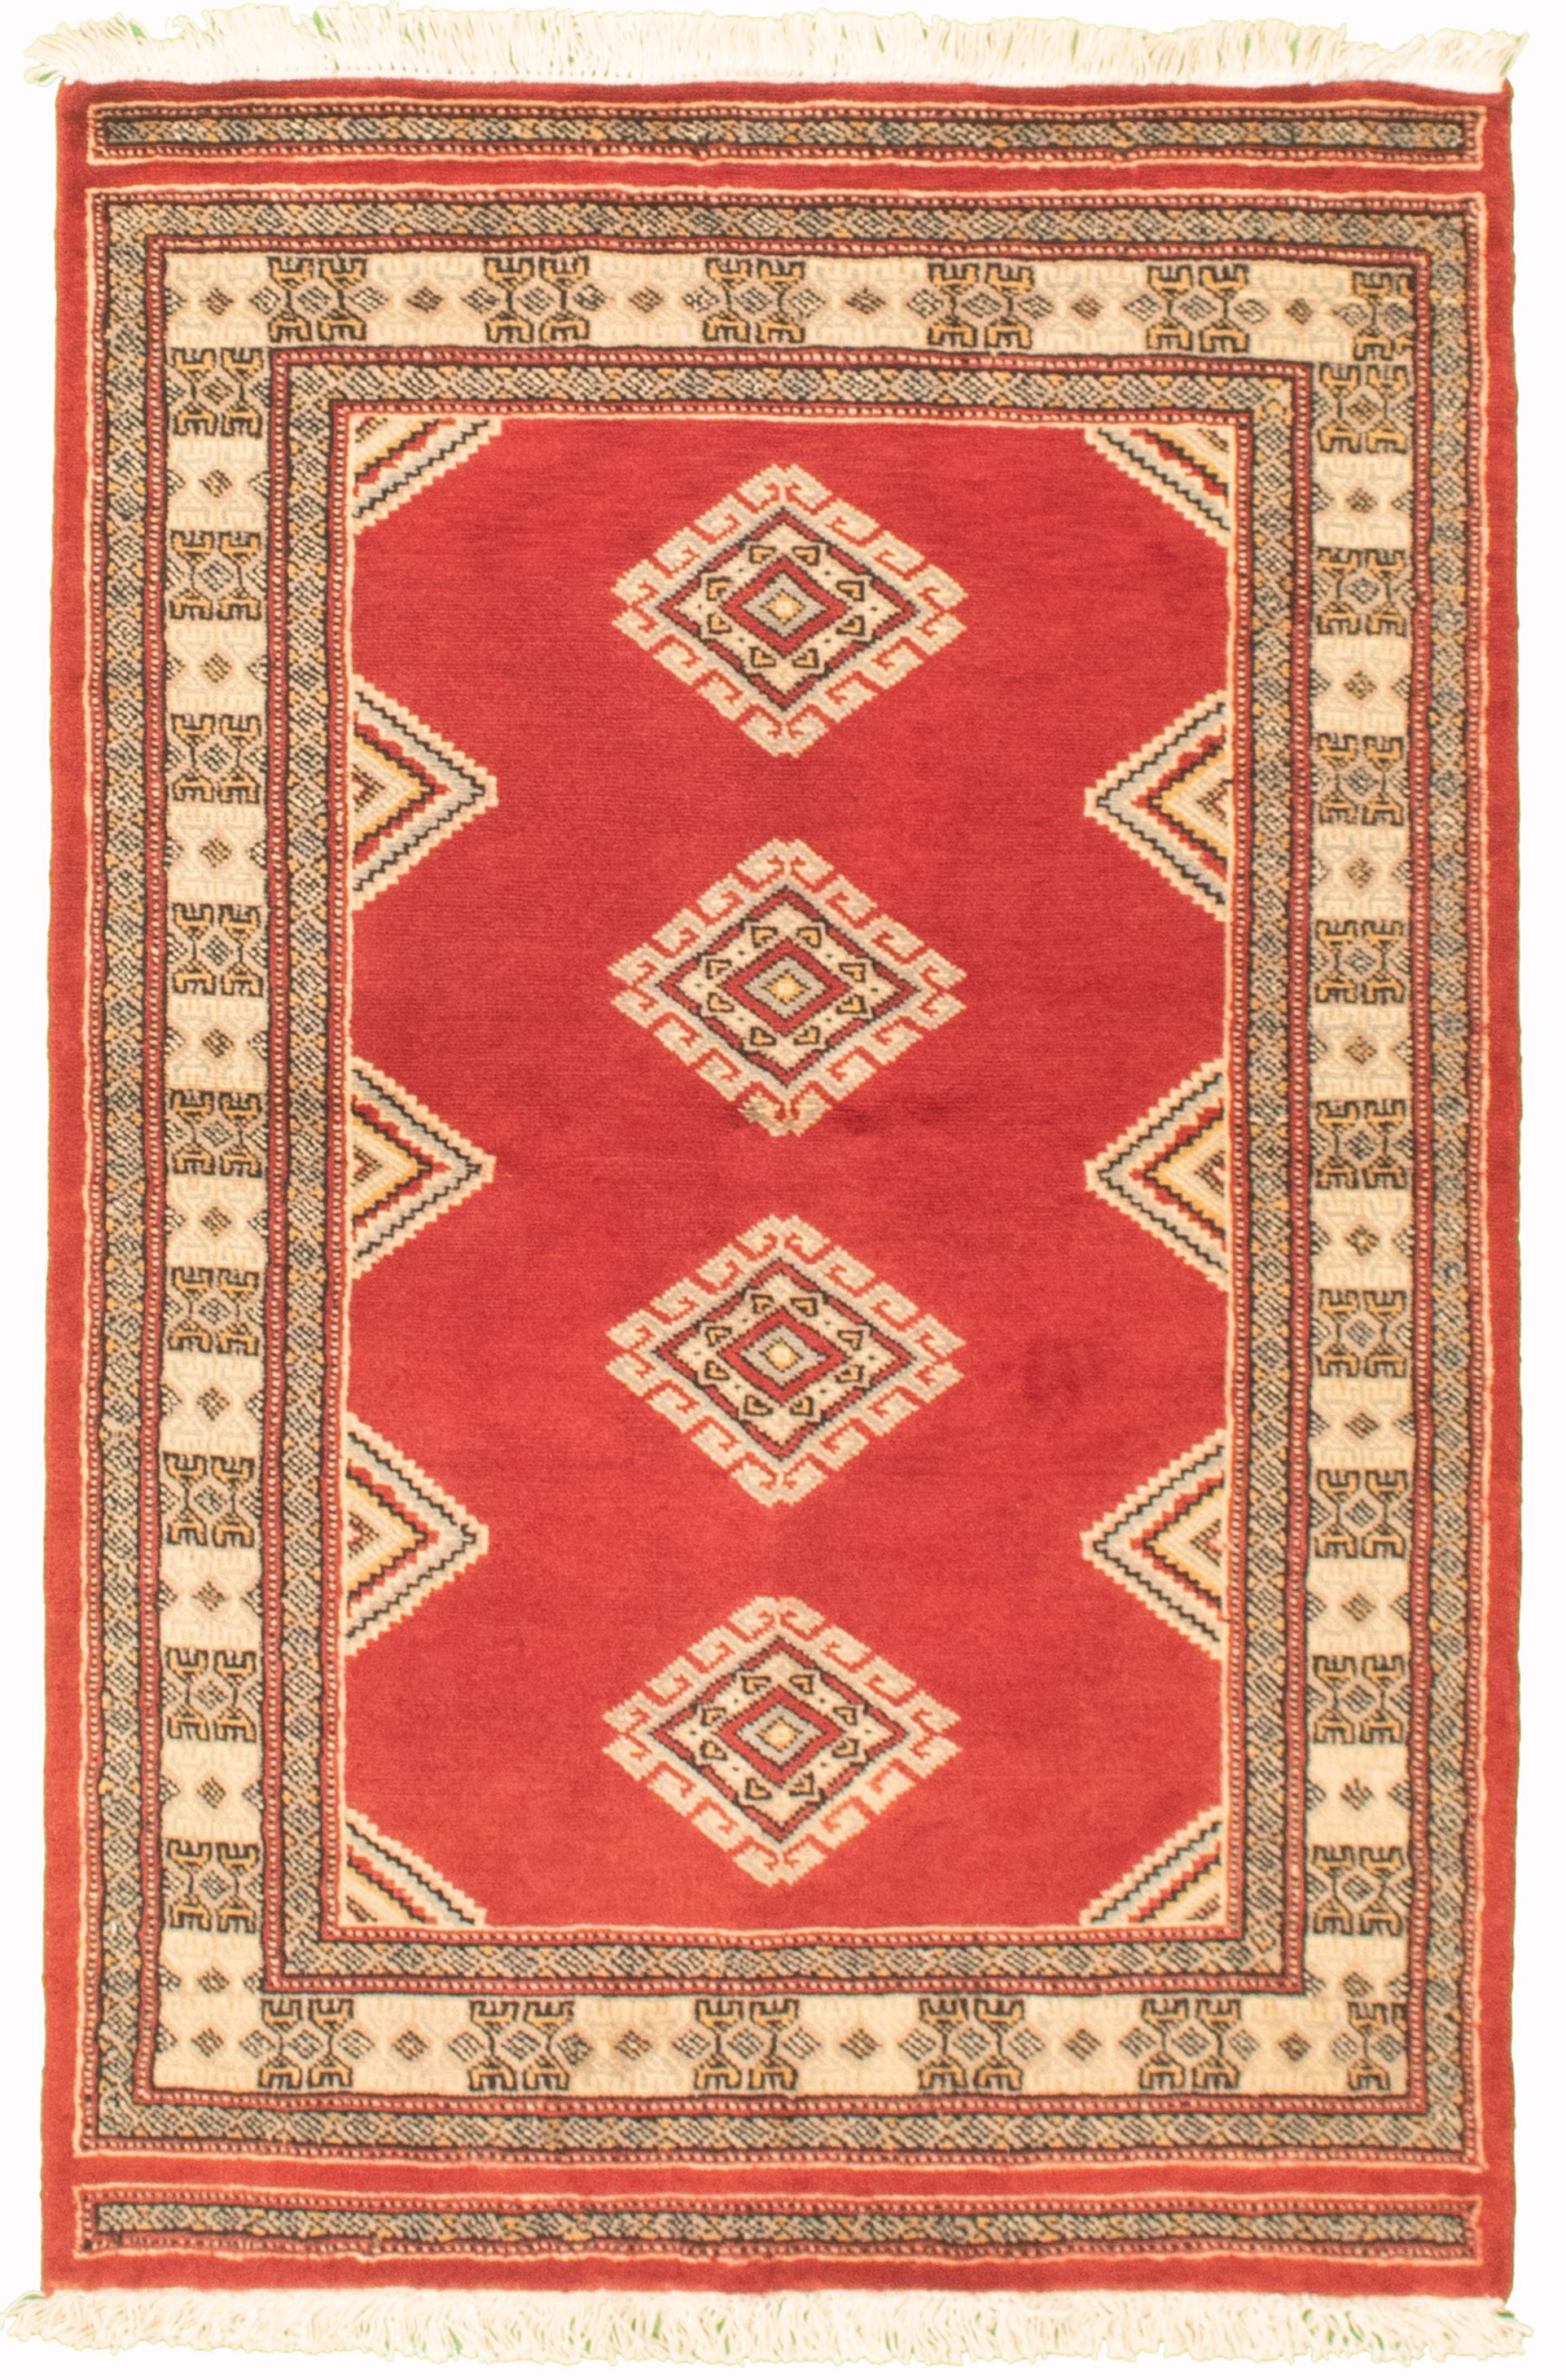 """Hand-knotted Finest Peshawar Bokhara Red Wool Rug 3'1"""" x 4'11""""  Size: 3'1"""" x 4'11"""""""